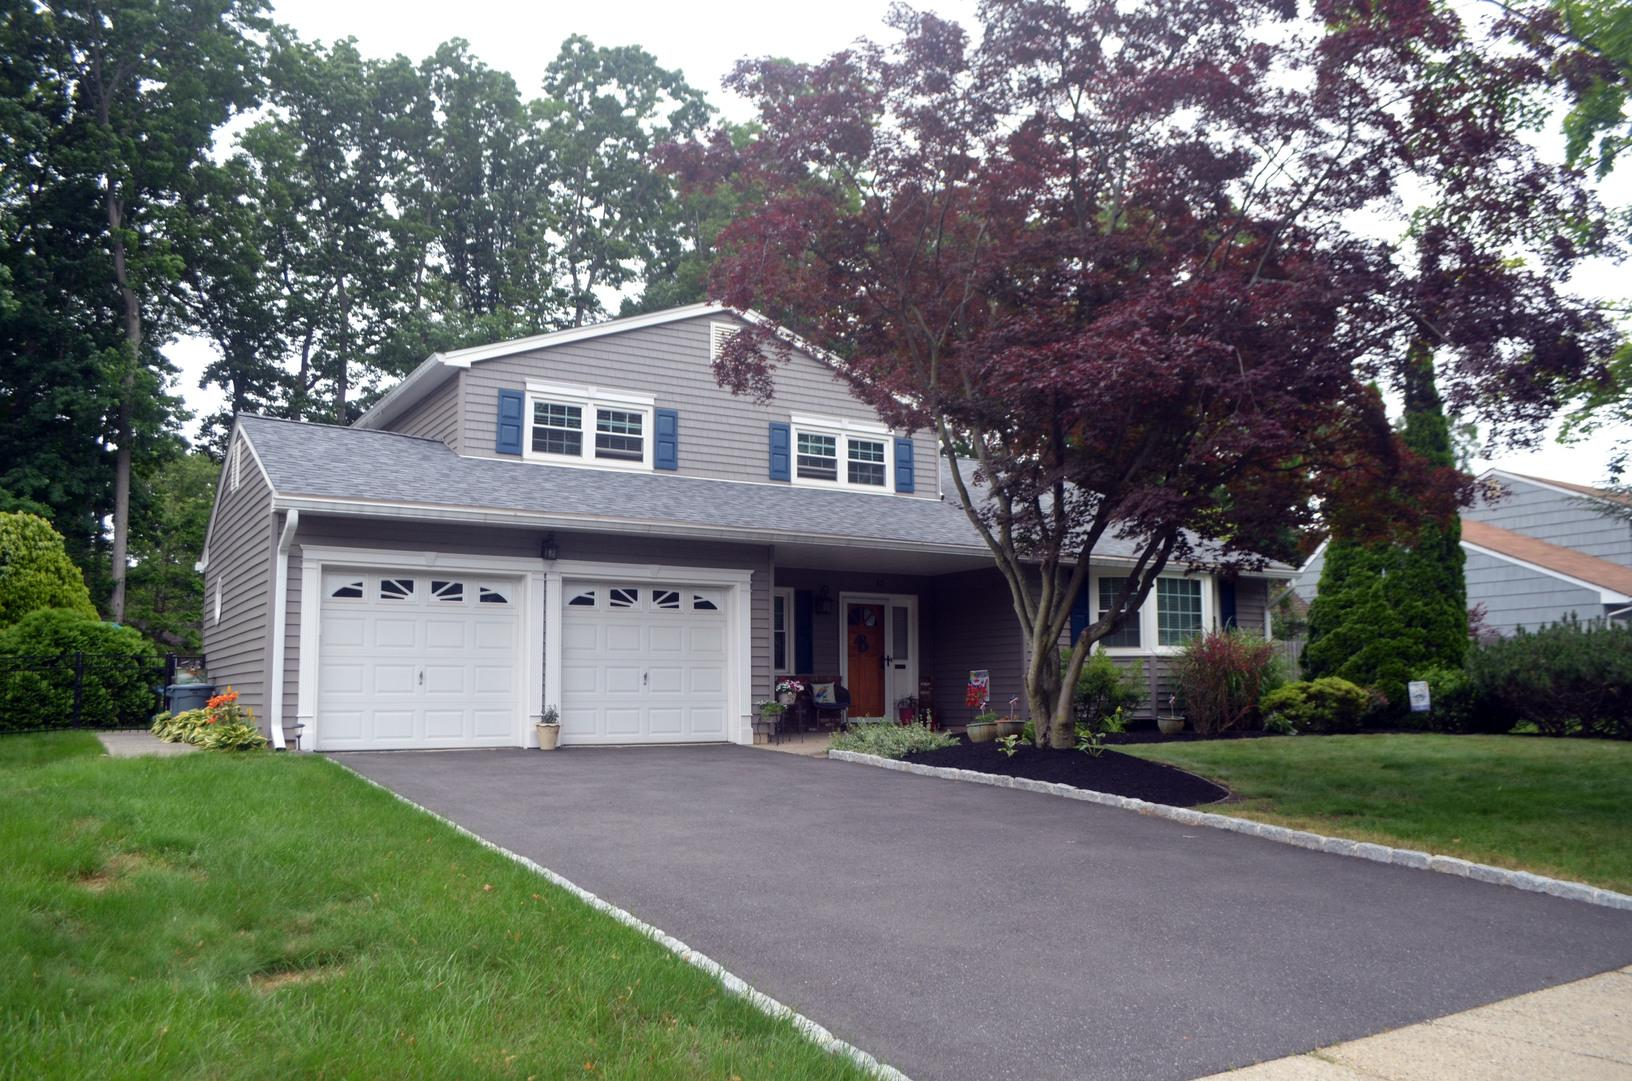 GlobalTech Vinyl Double Hung and Bay Window, Harbor Blue Odyssey Vinyl Clap Board Siding, and Owens Corning Estate Grey Architectural Shingle Installation in East Brunswick, NJ - After Photo